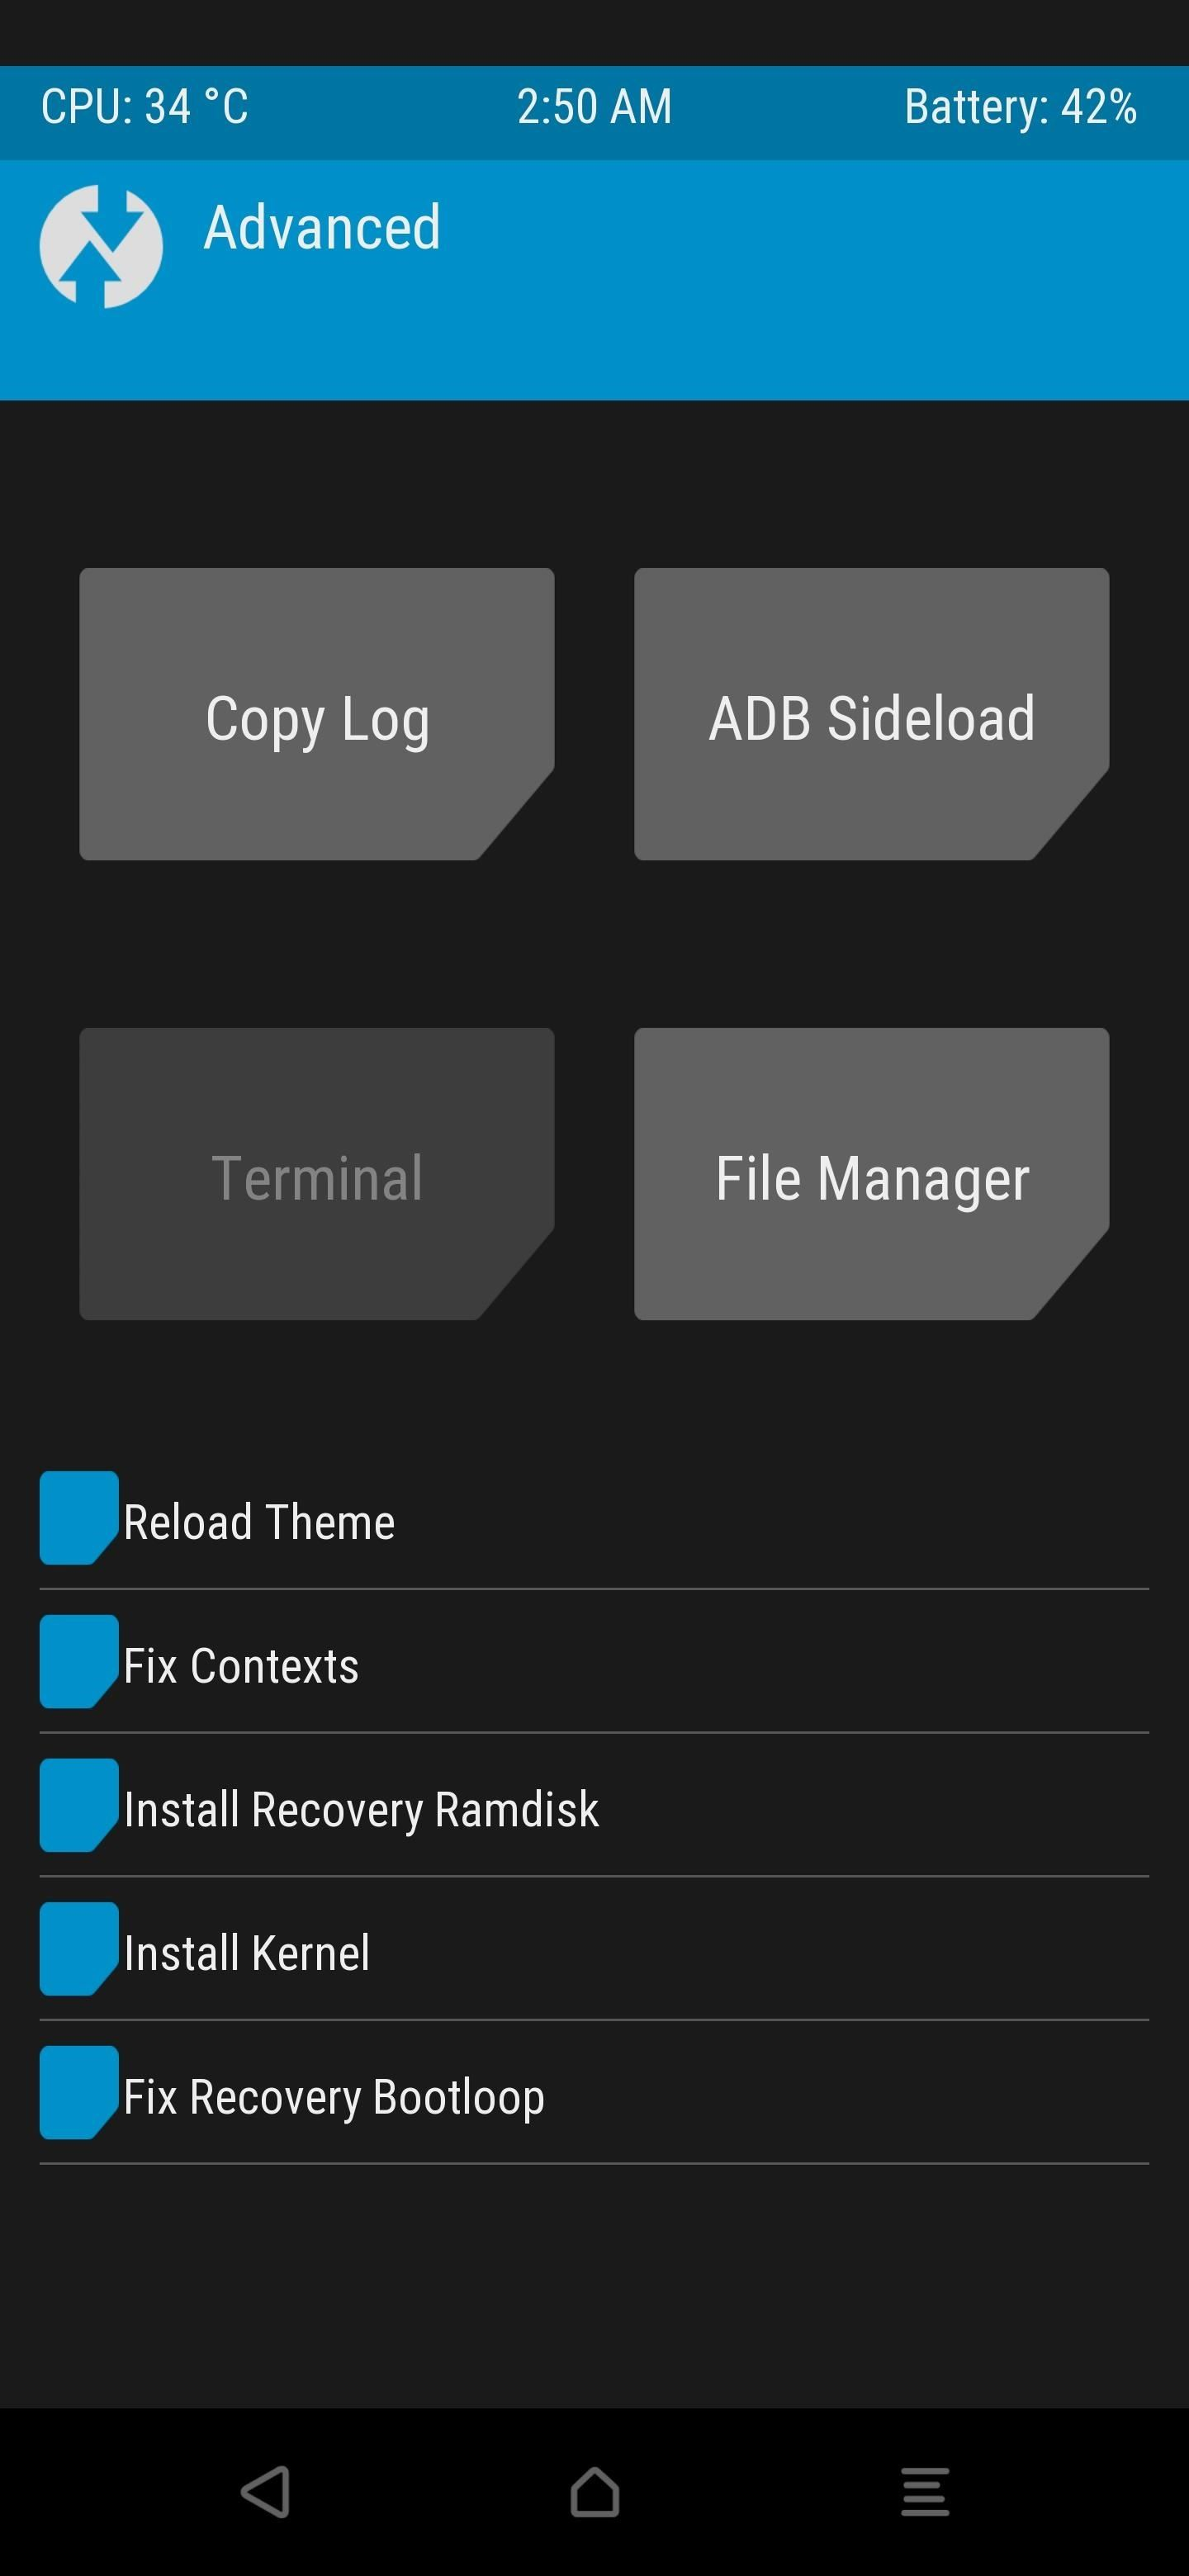 How to Jailbreak Your iPhone with an Android Phone or Tablet Using TWRP